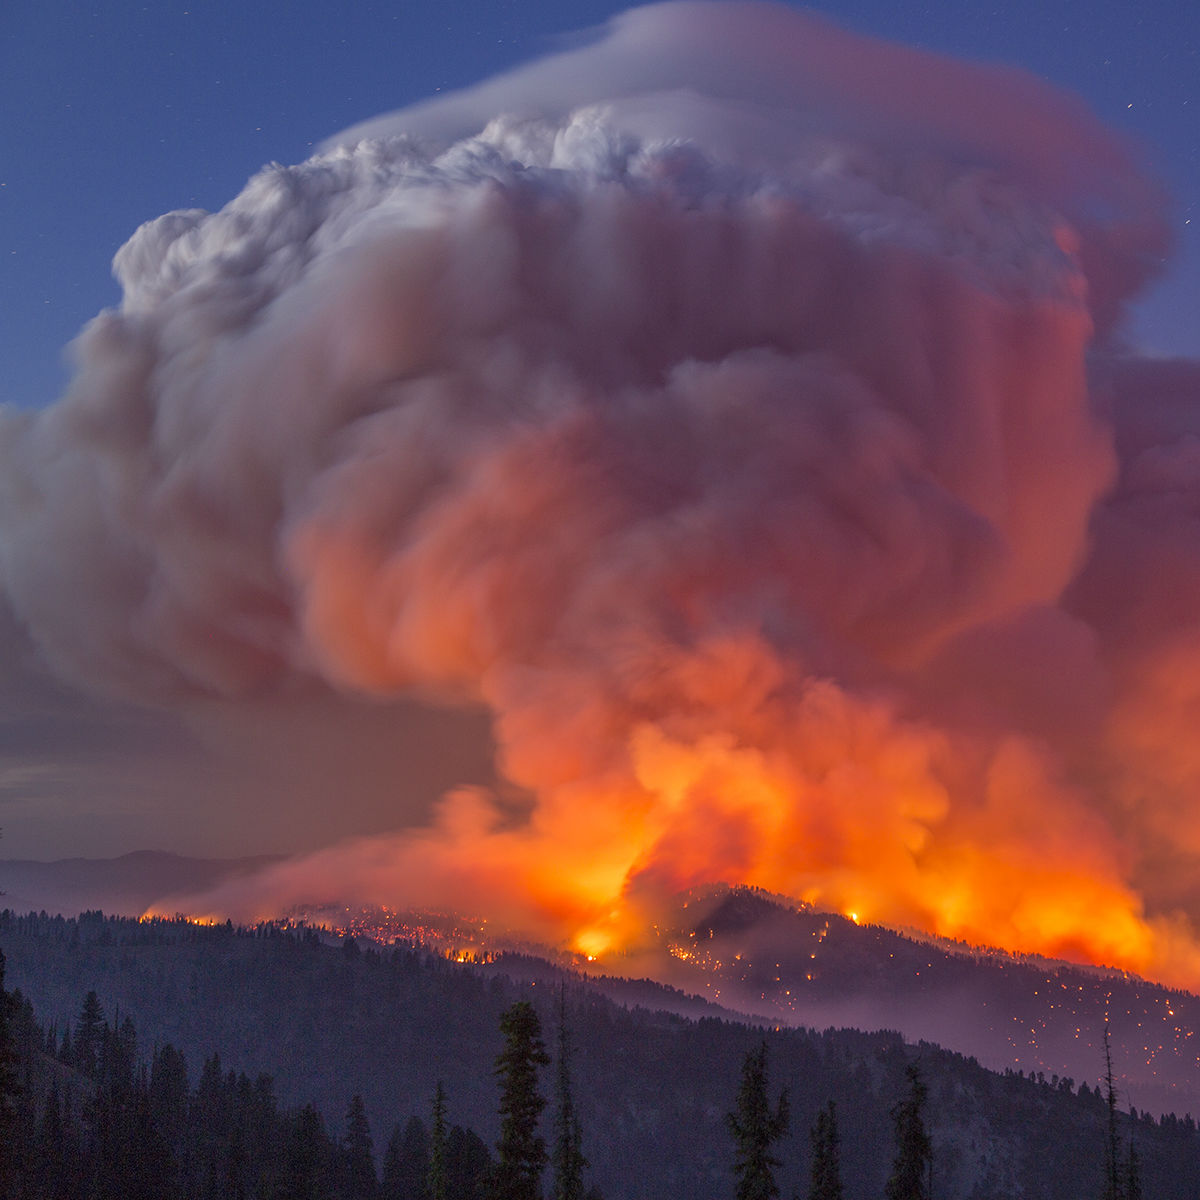 A column of smoke rises from a mountain on fire.